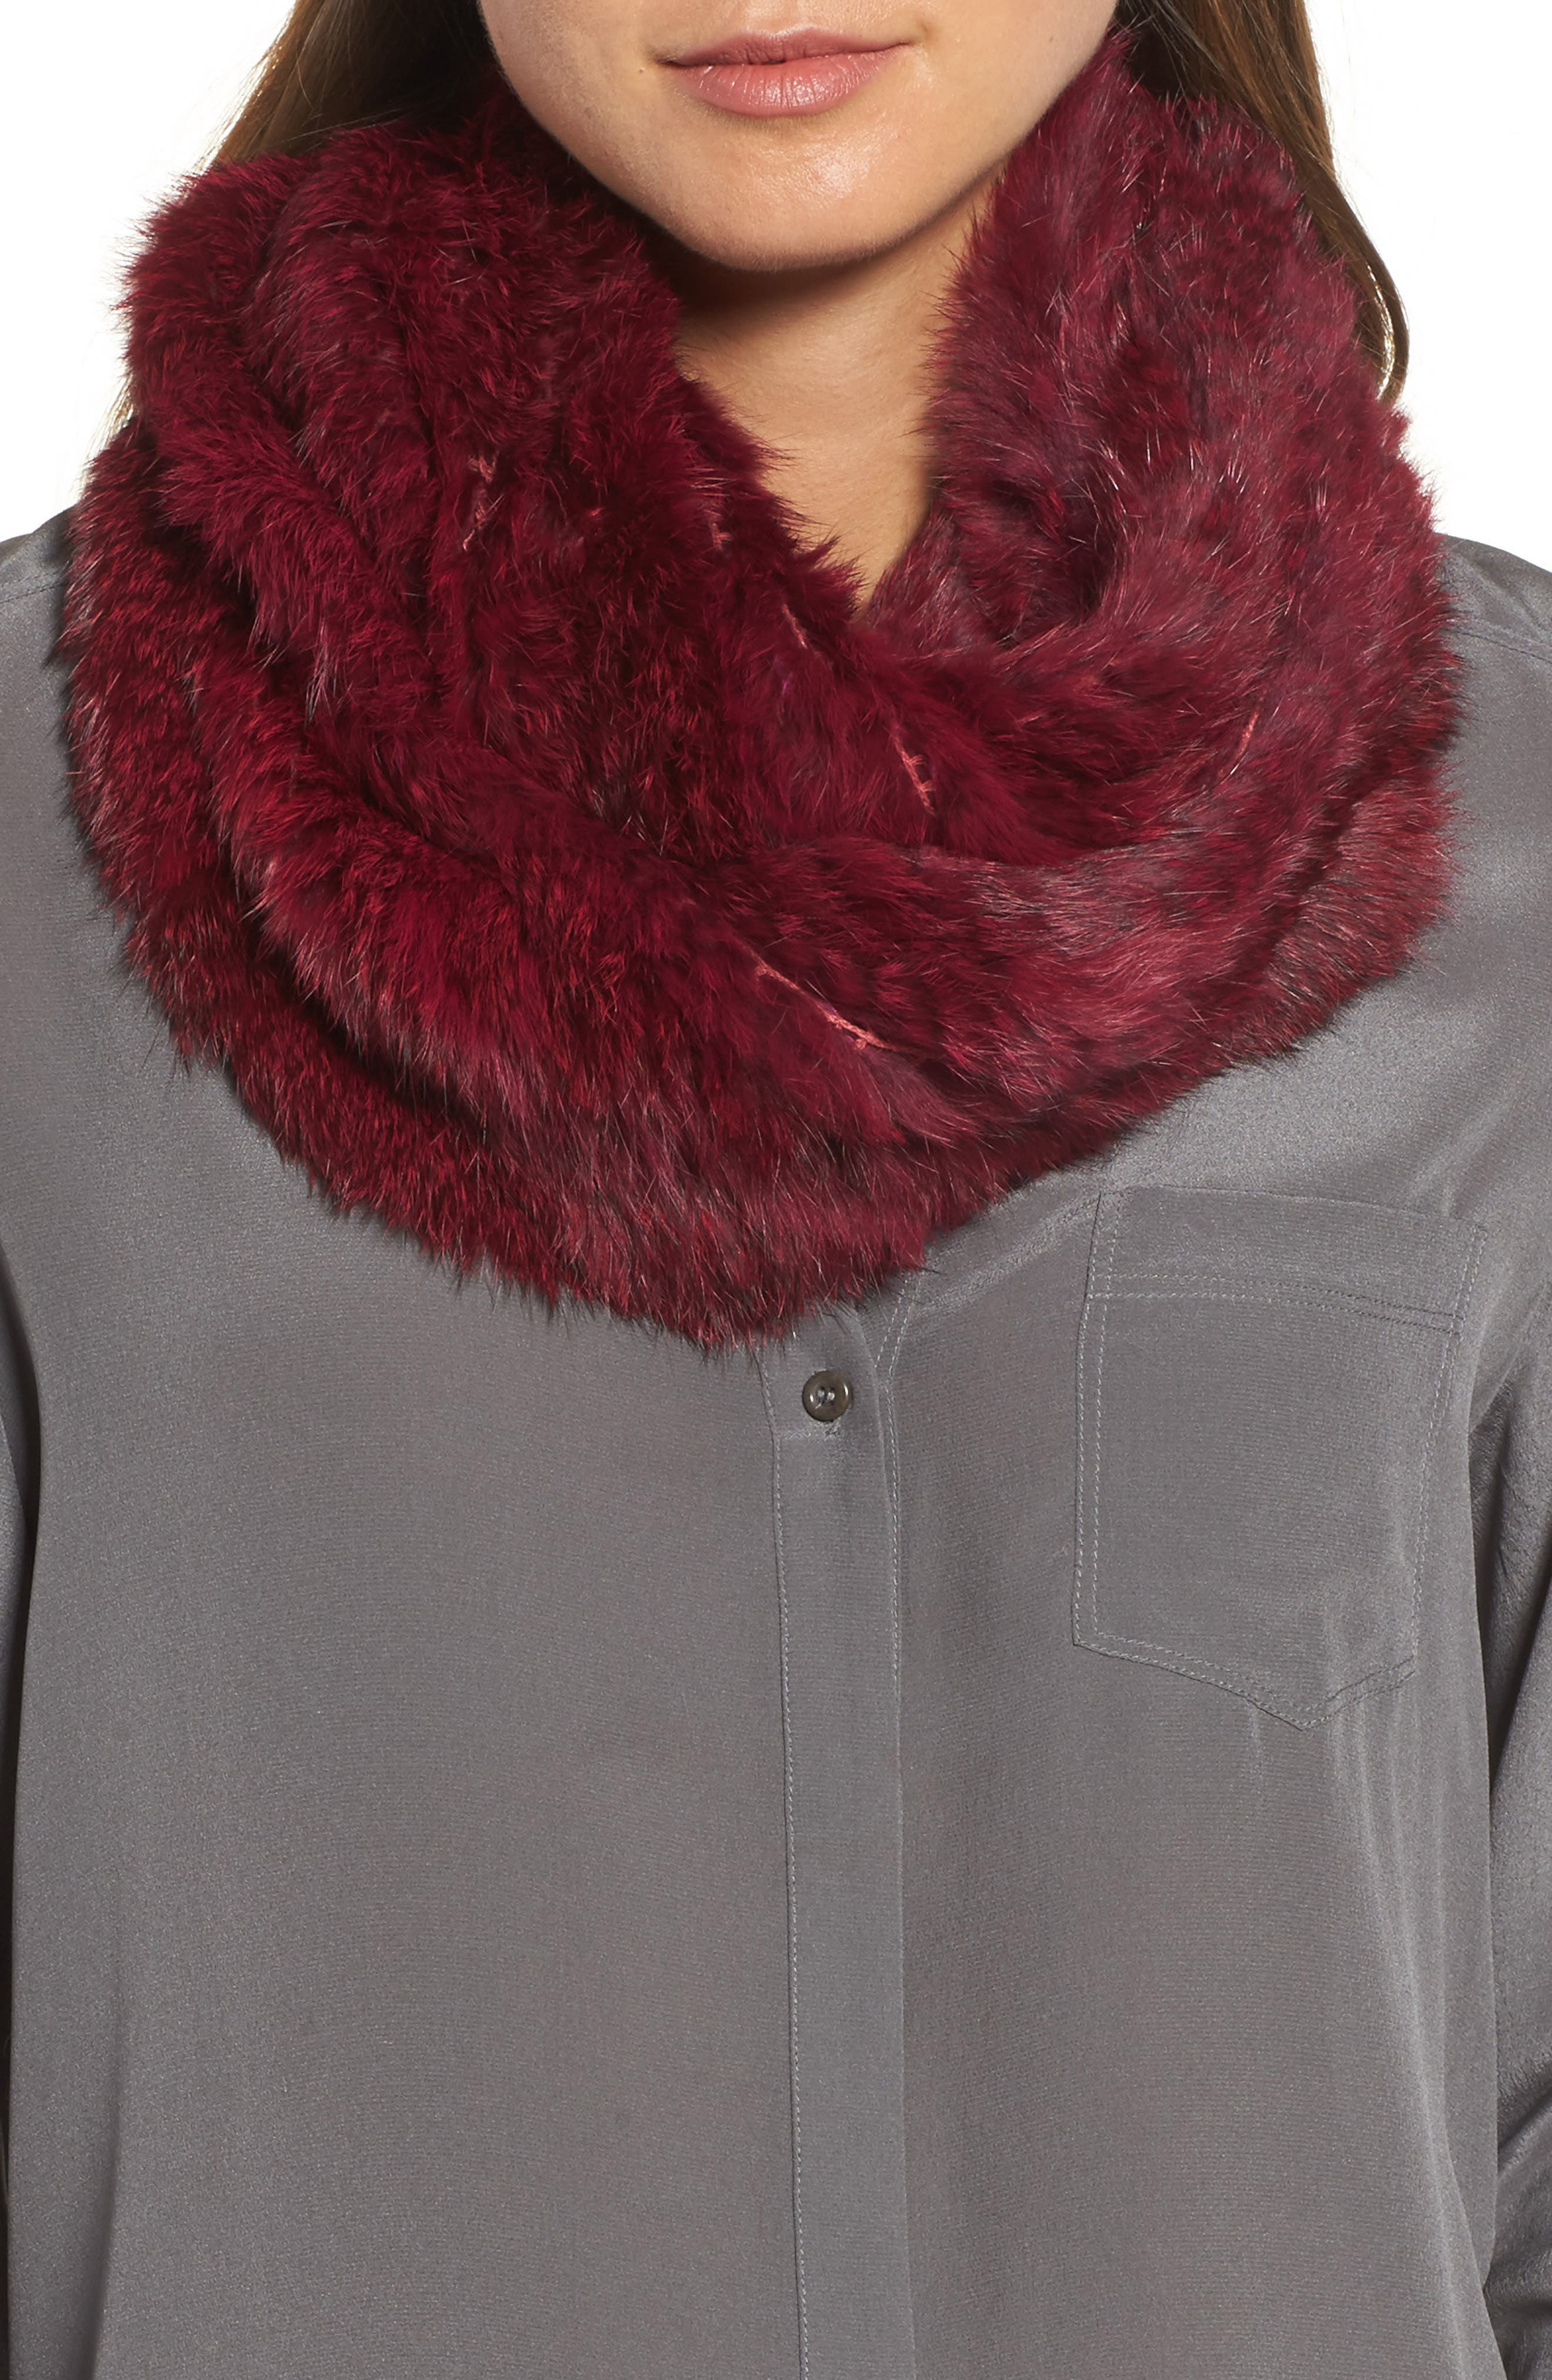 Overdyed Genuine Rabbit Fur Infinity Scarf,                         Main,                         color, Ruby